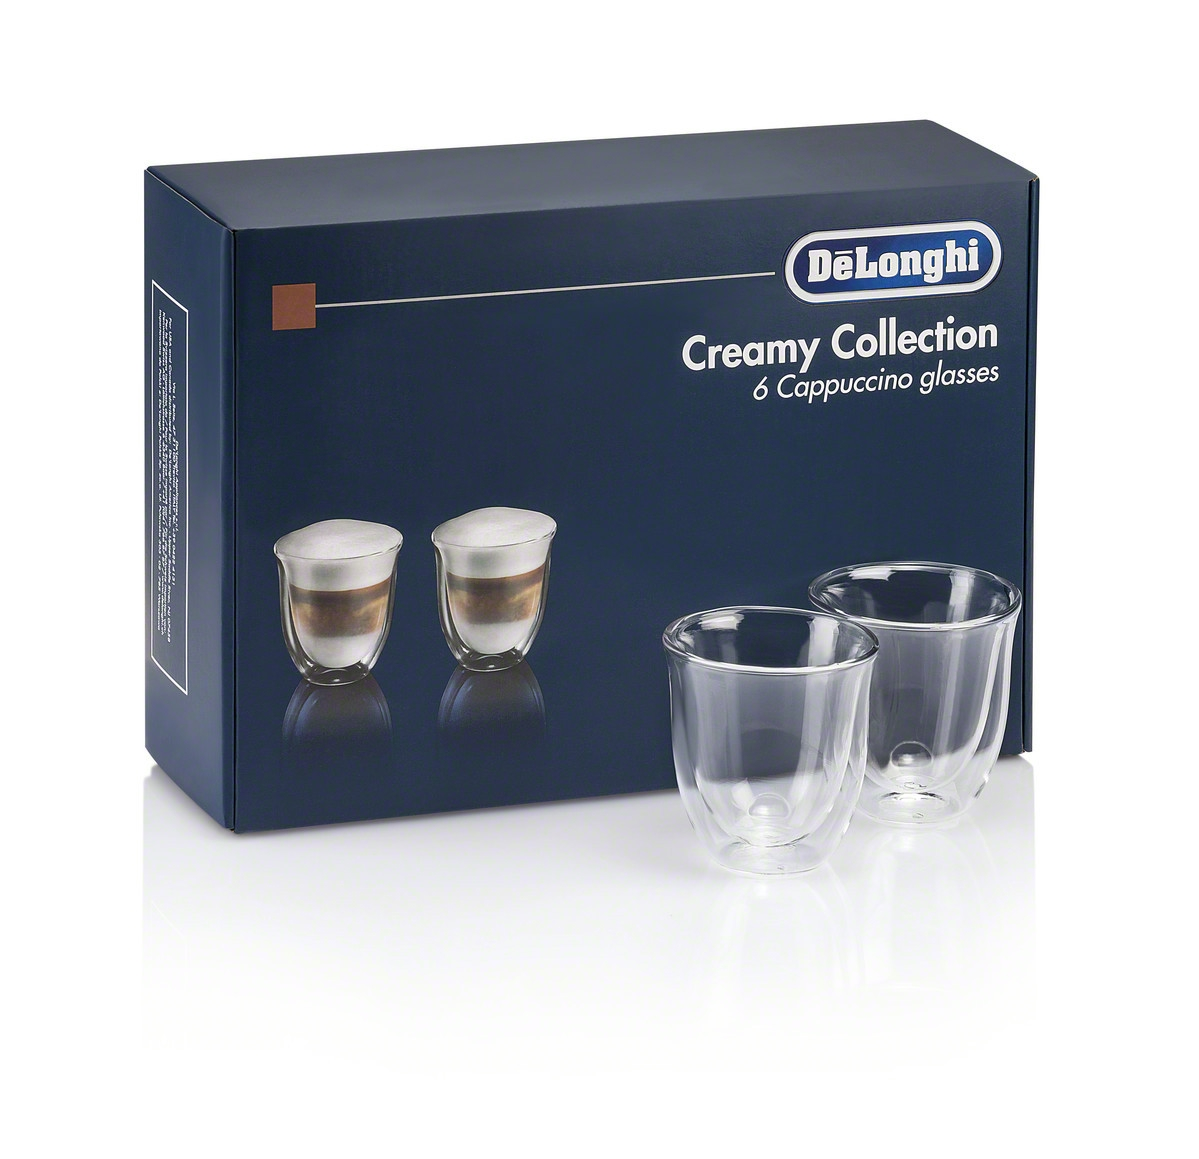 De'Longhi Gift Set 6 Cappuccino Double Wall Thermal Glasses